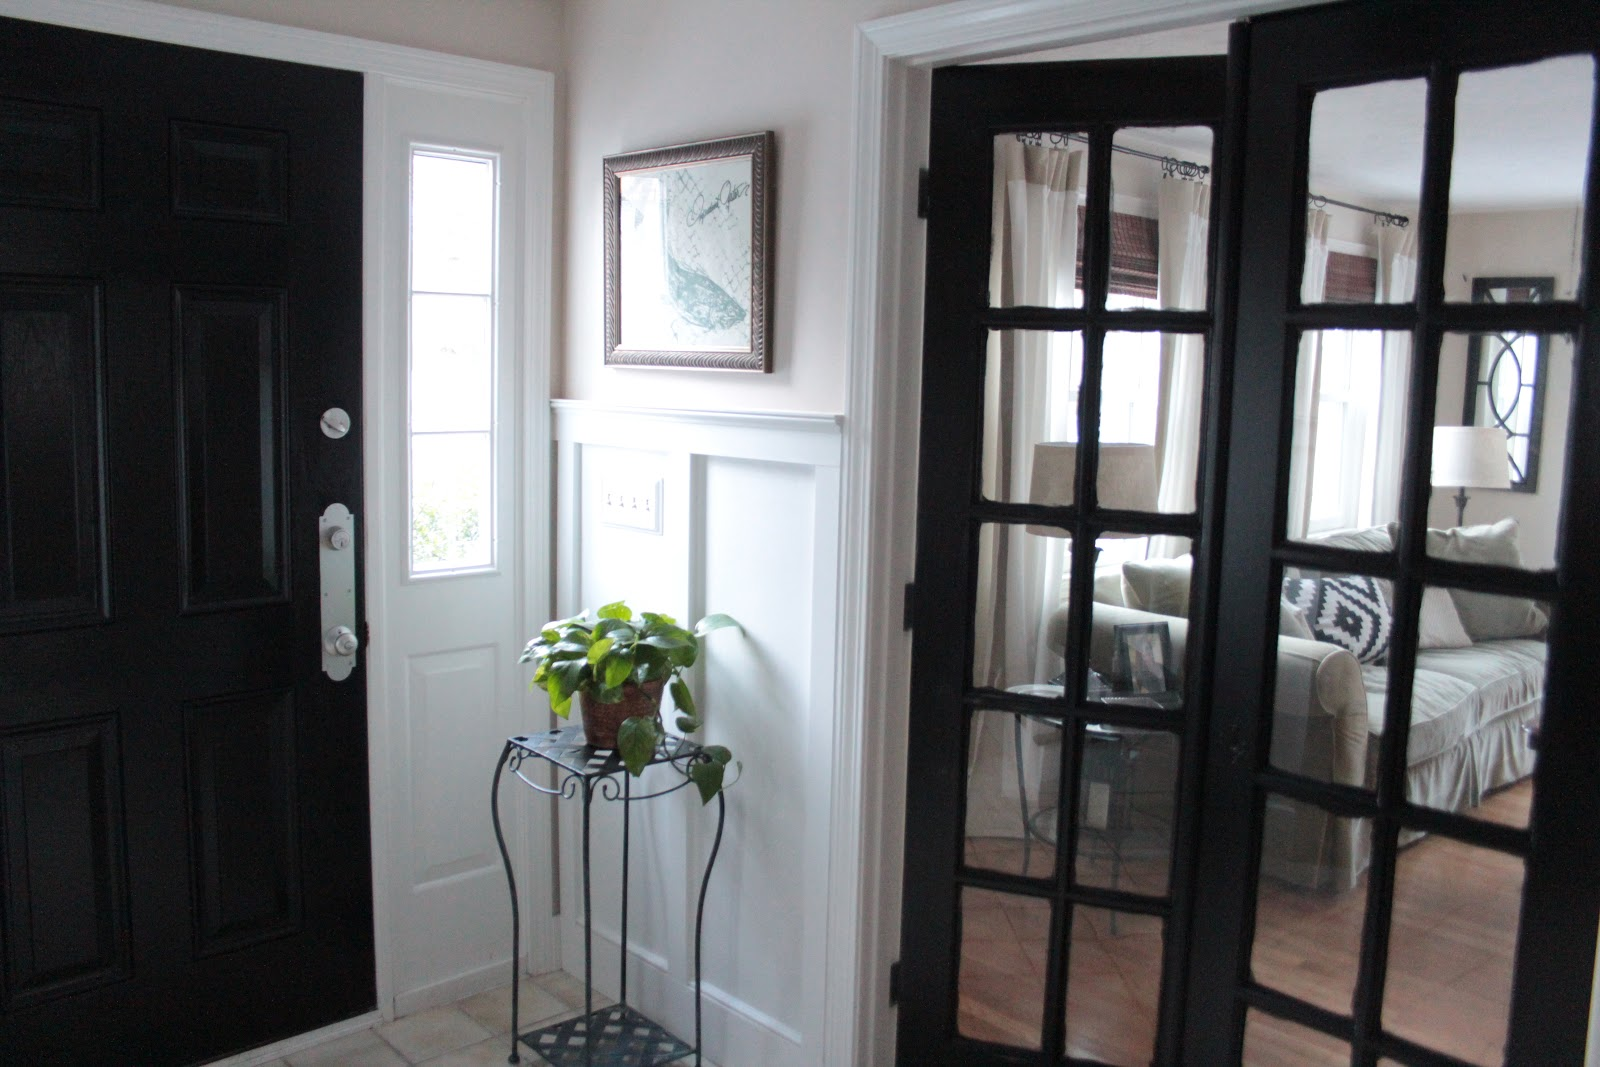 Fullsize Of Black Interior Doors